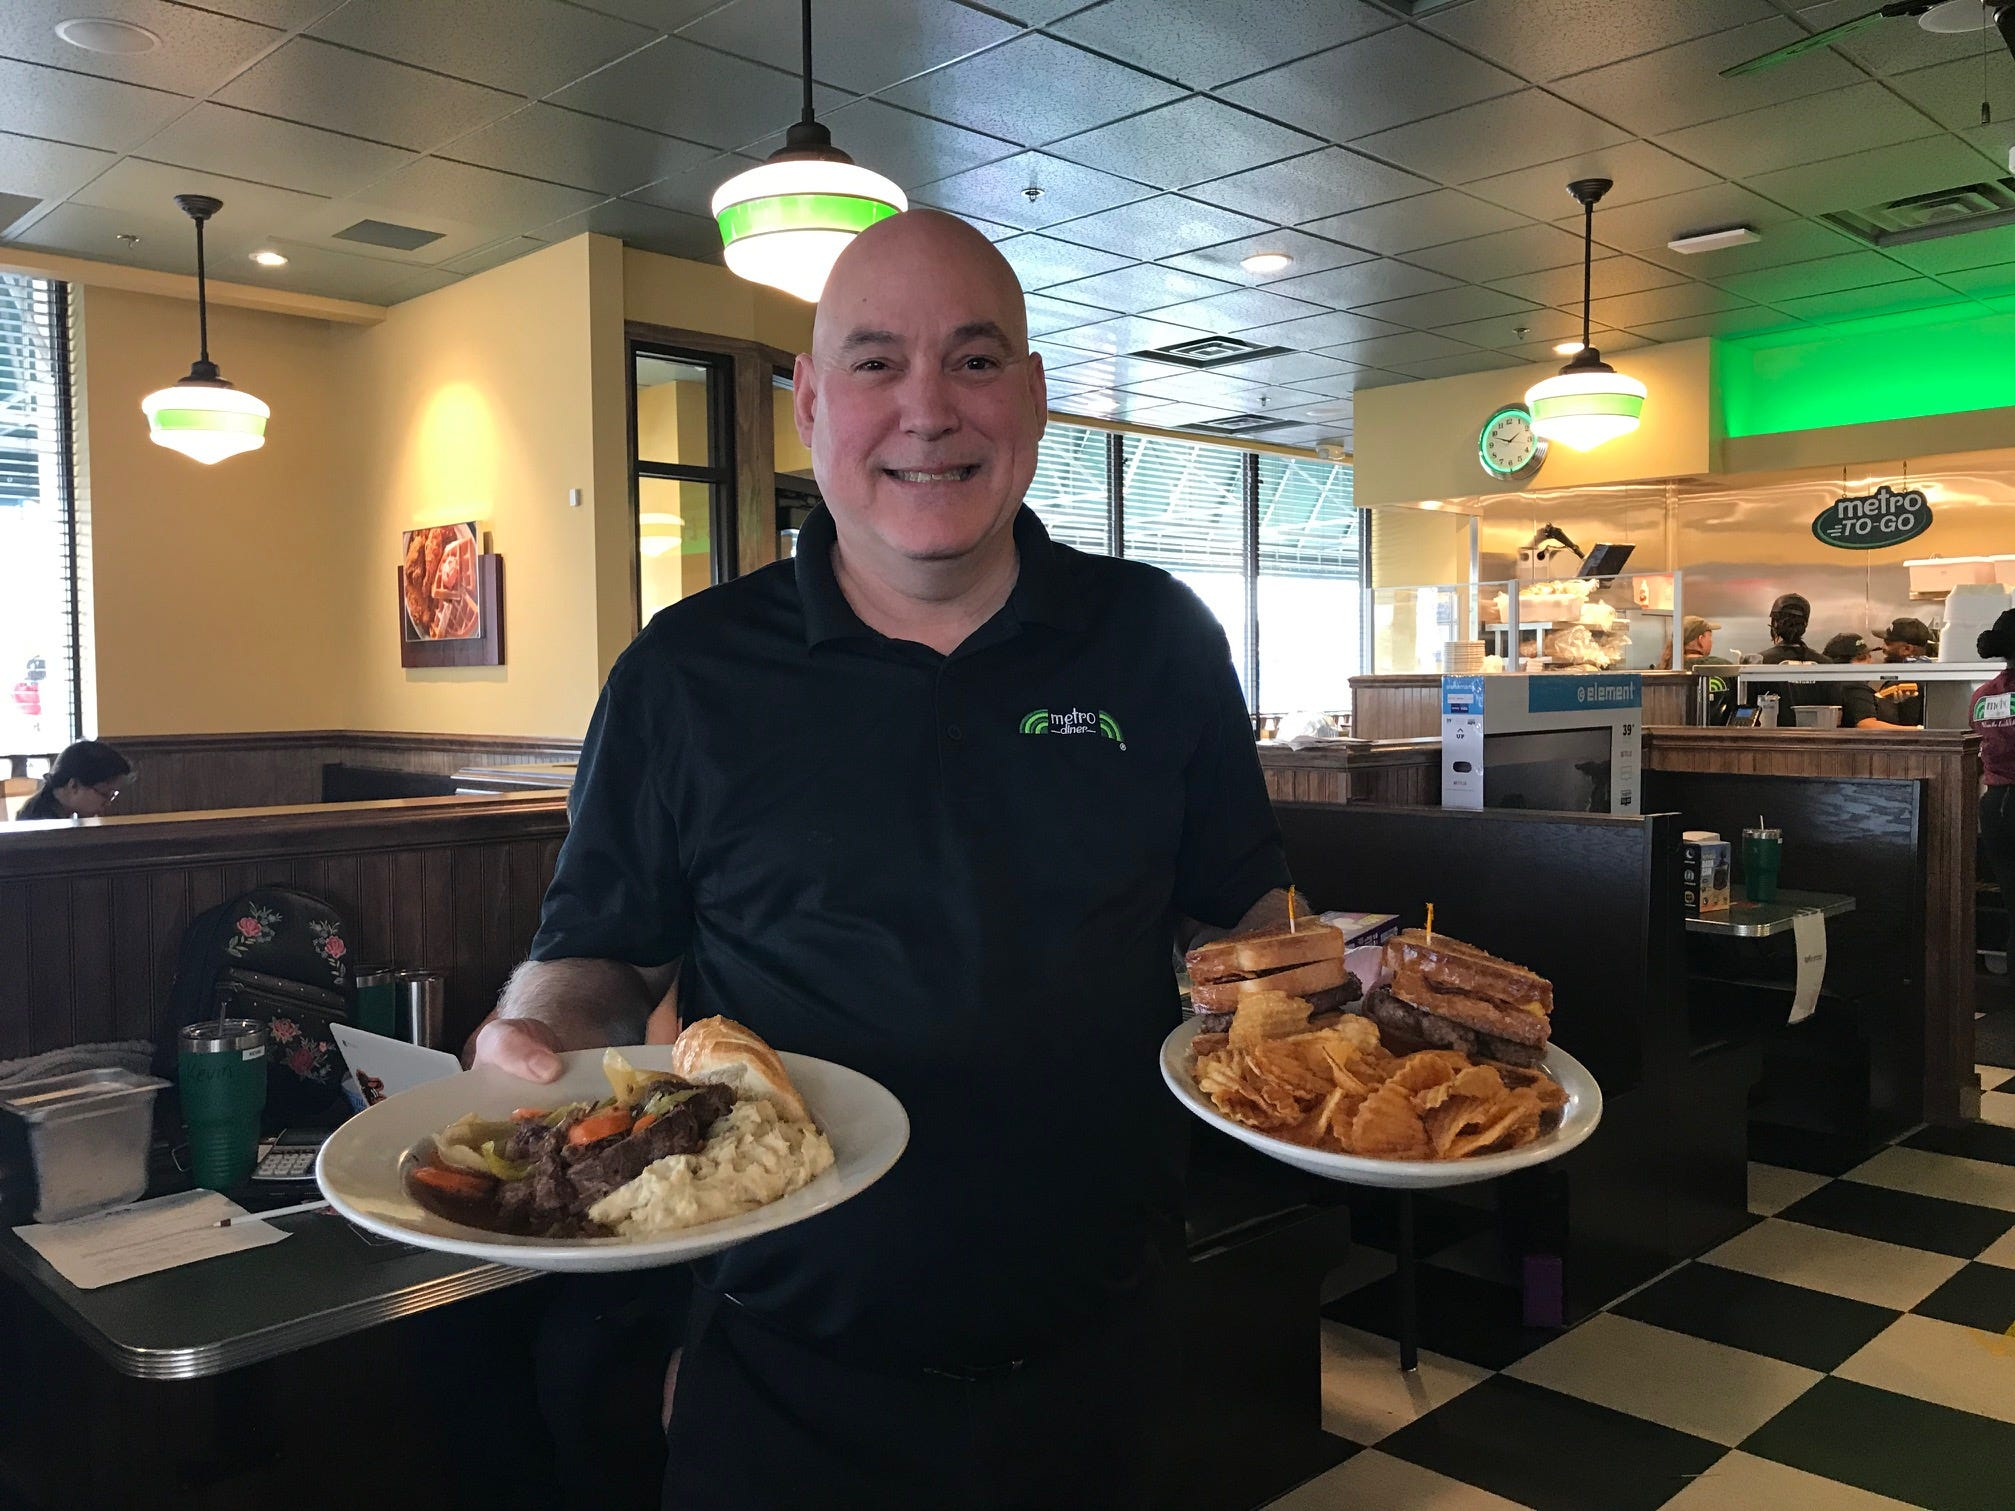 Managing Partner Michael Killeen shows off some of the dishes at Metro Diner in East Brunswick.